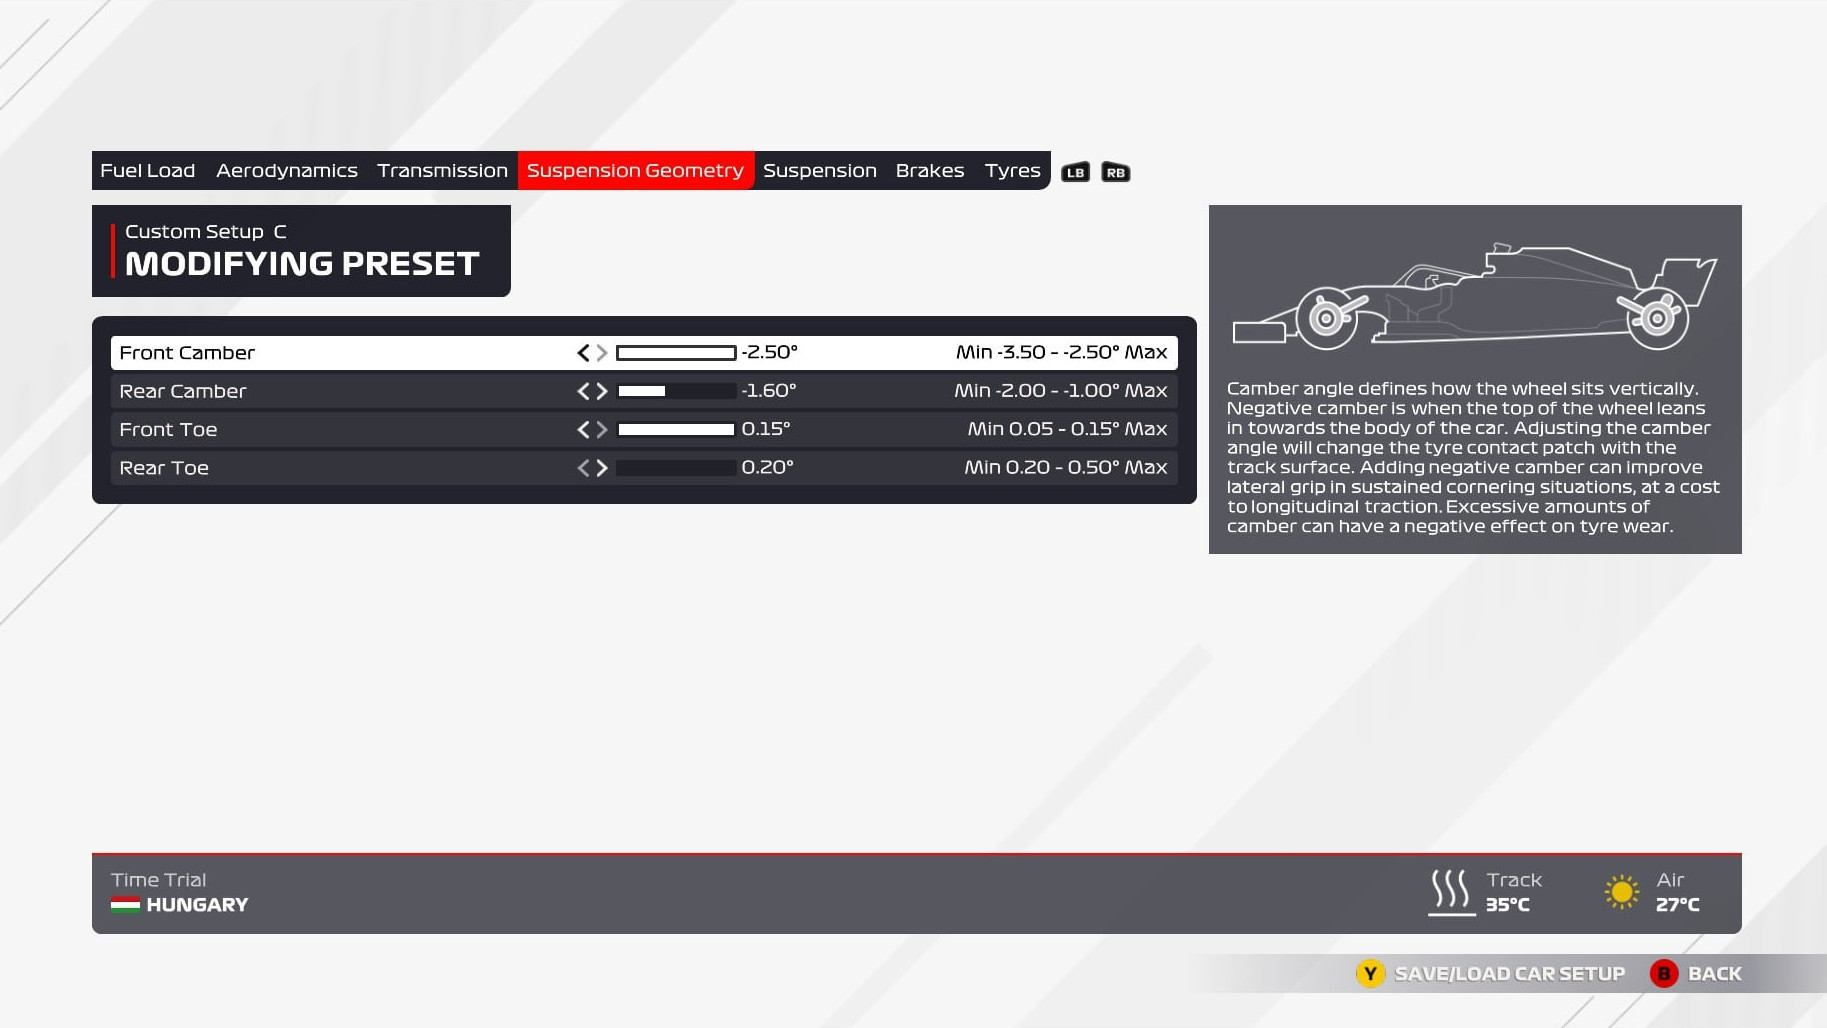 An image of the suspension geometry page of the F1 2021 setup menu.